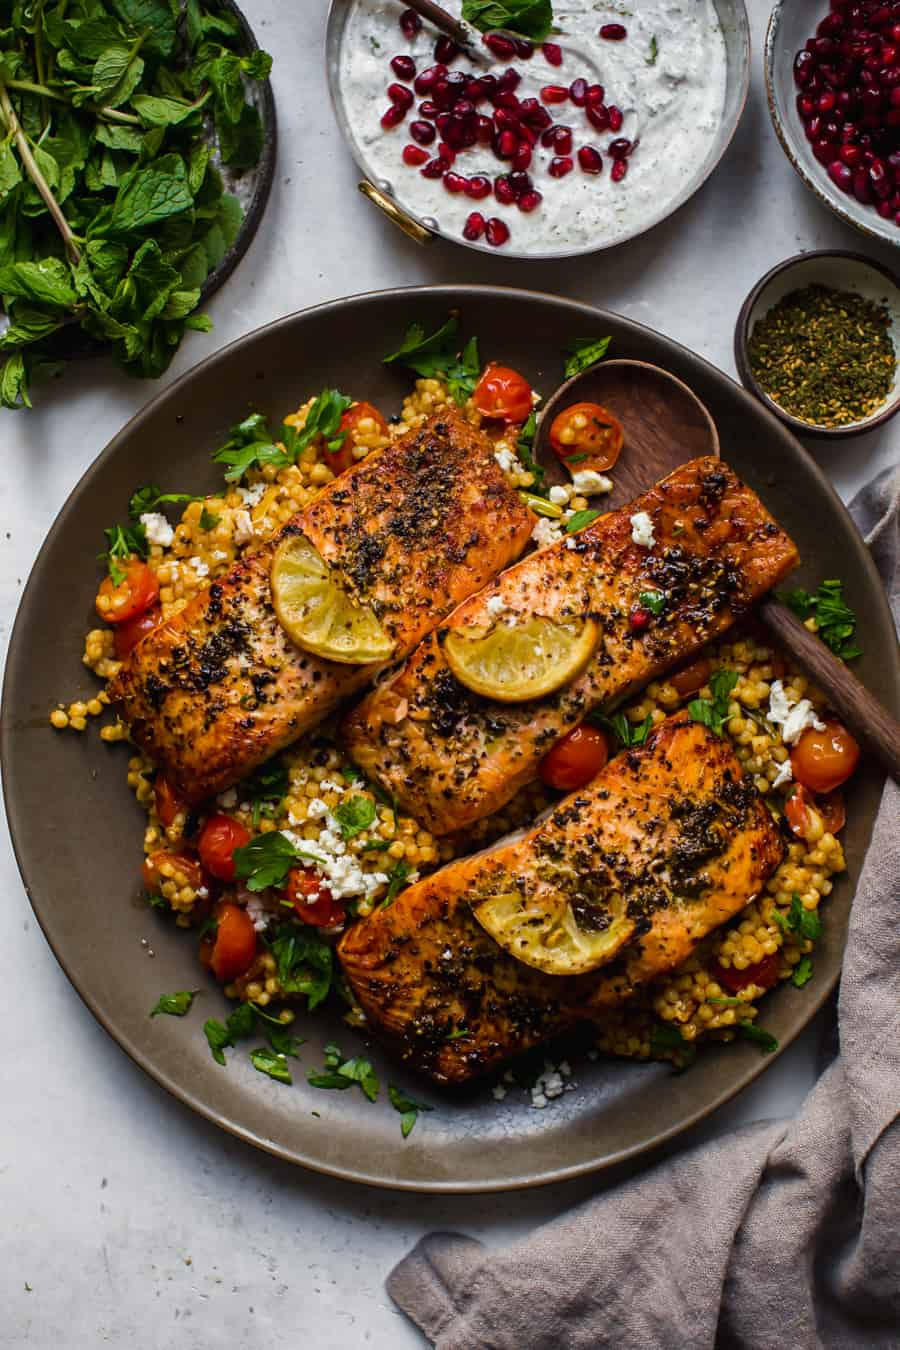 Roasted Salmon with Za'atar and Sumac